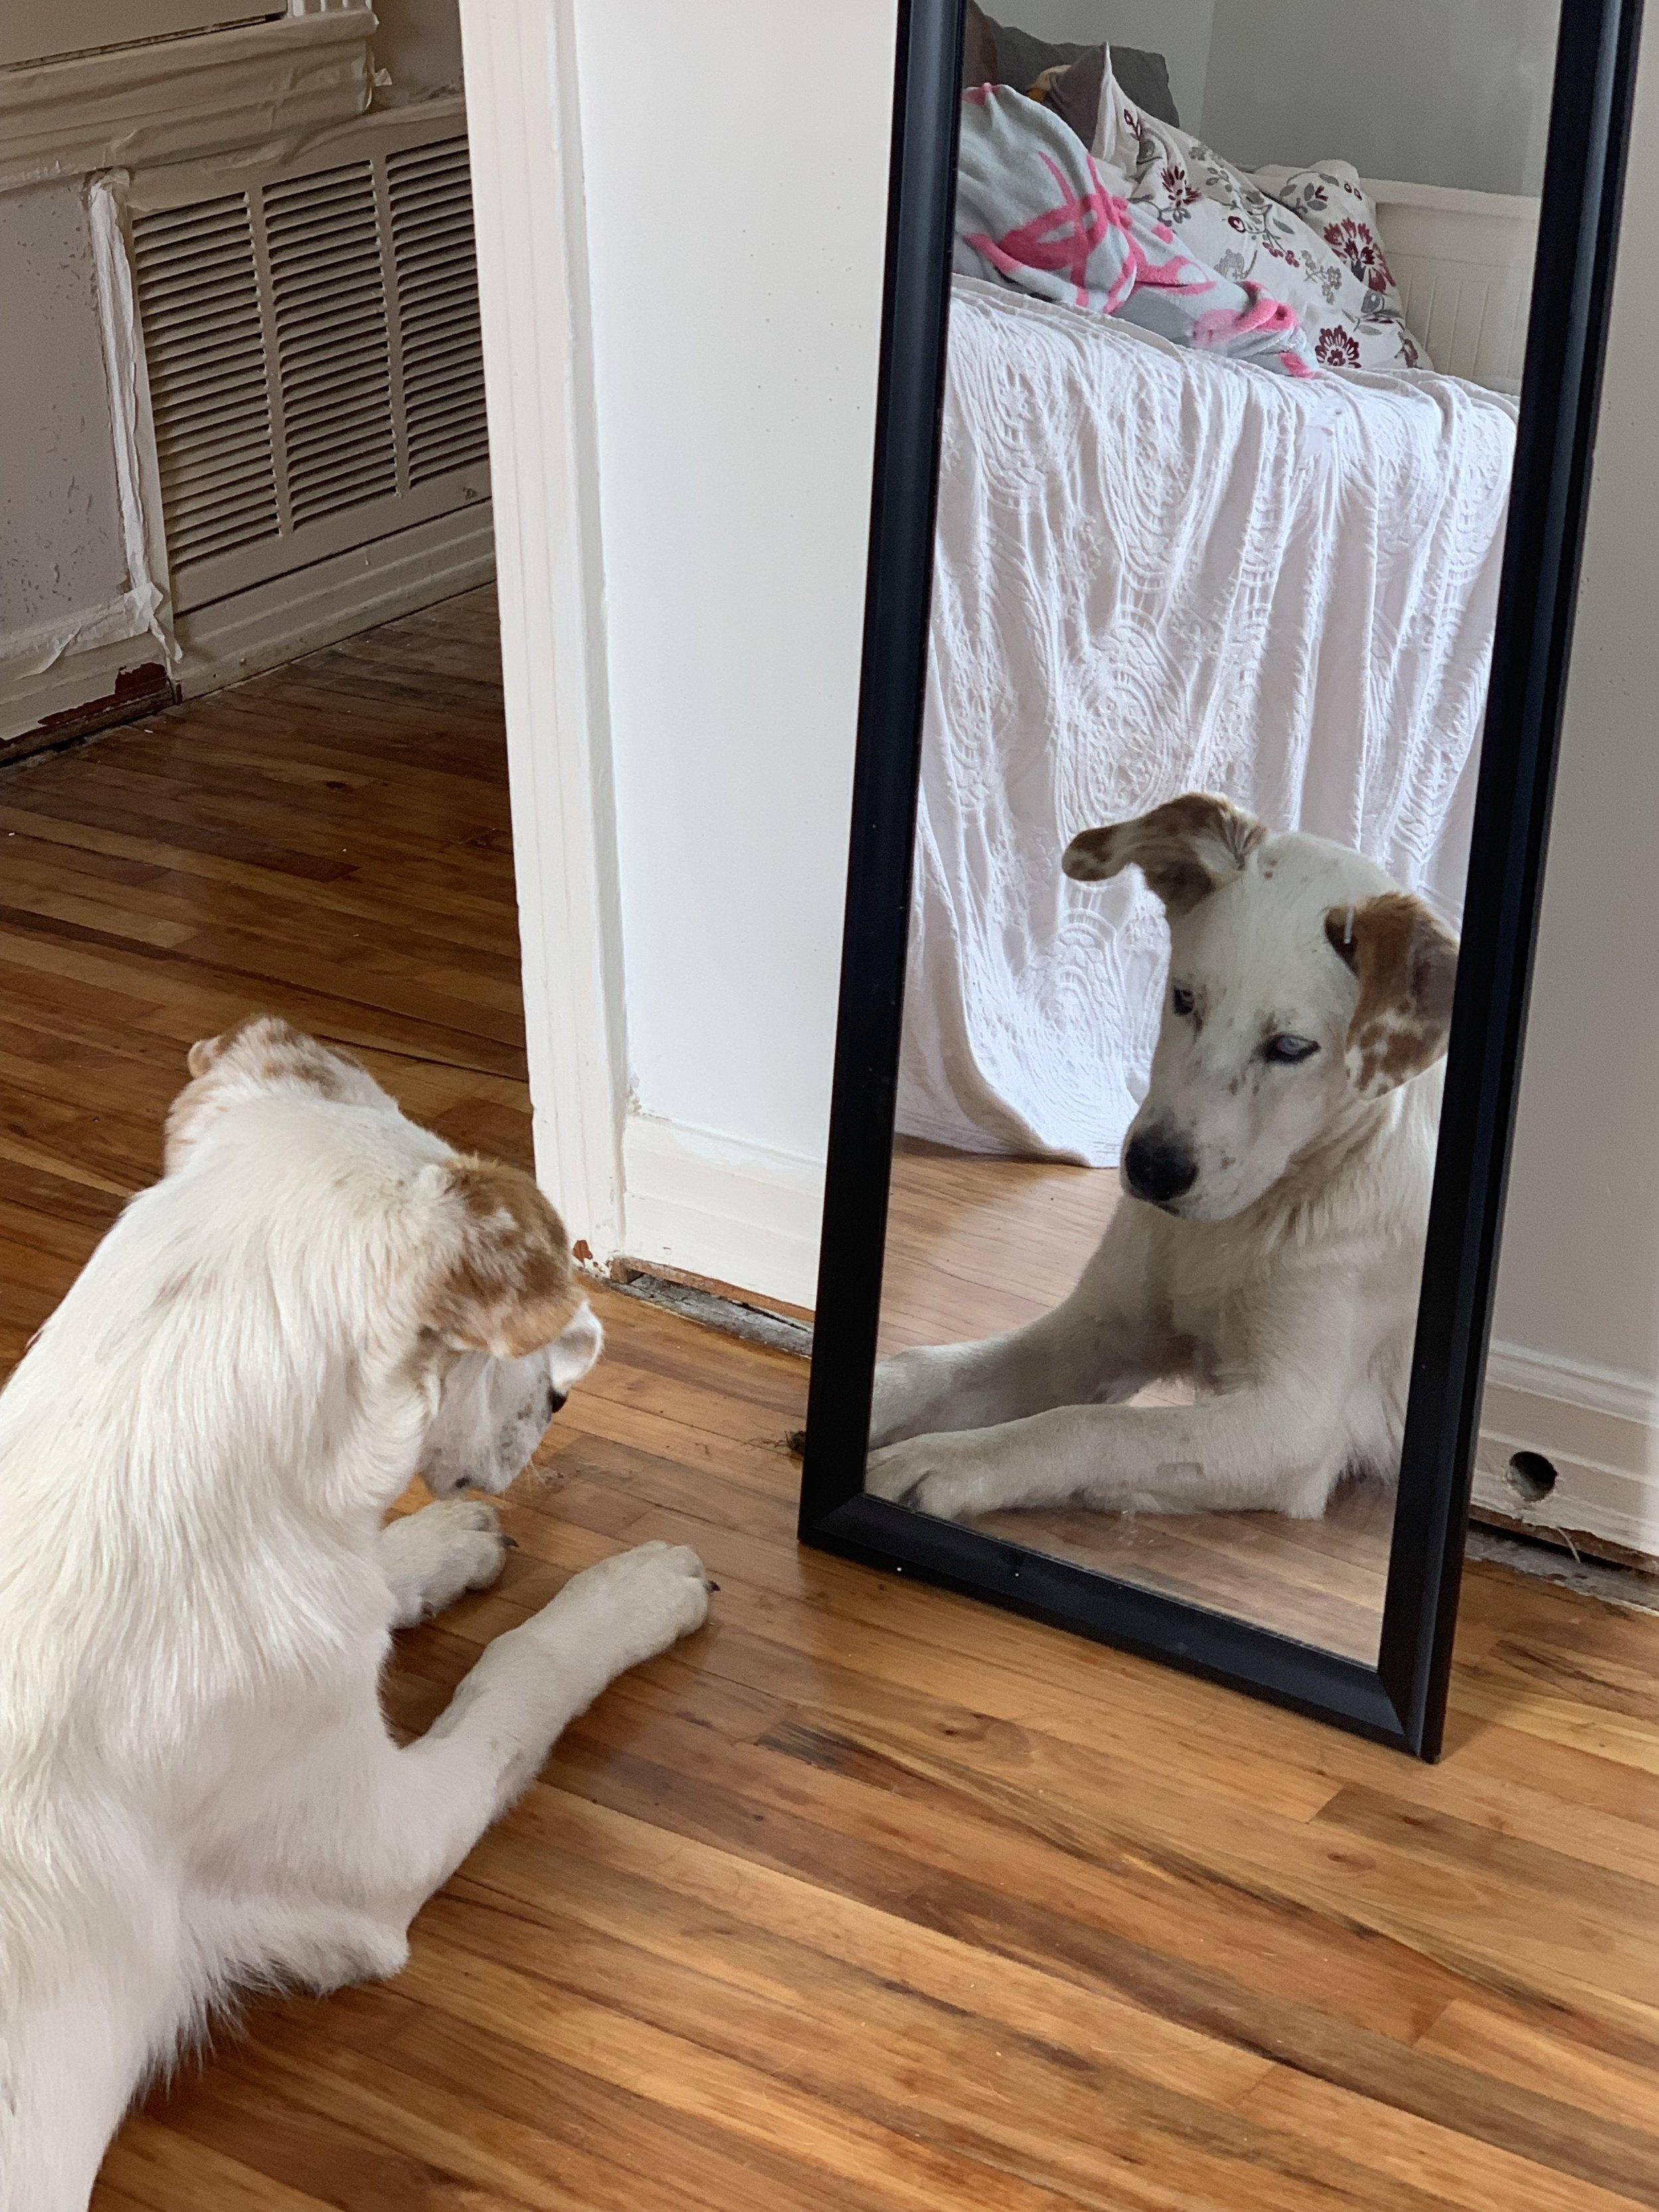 I have caught Tumnus staring into his reflection a number of times. Honestly, I can't blame the bugger. He's pretty cute.